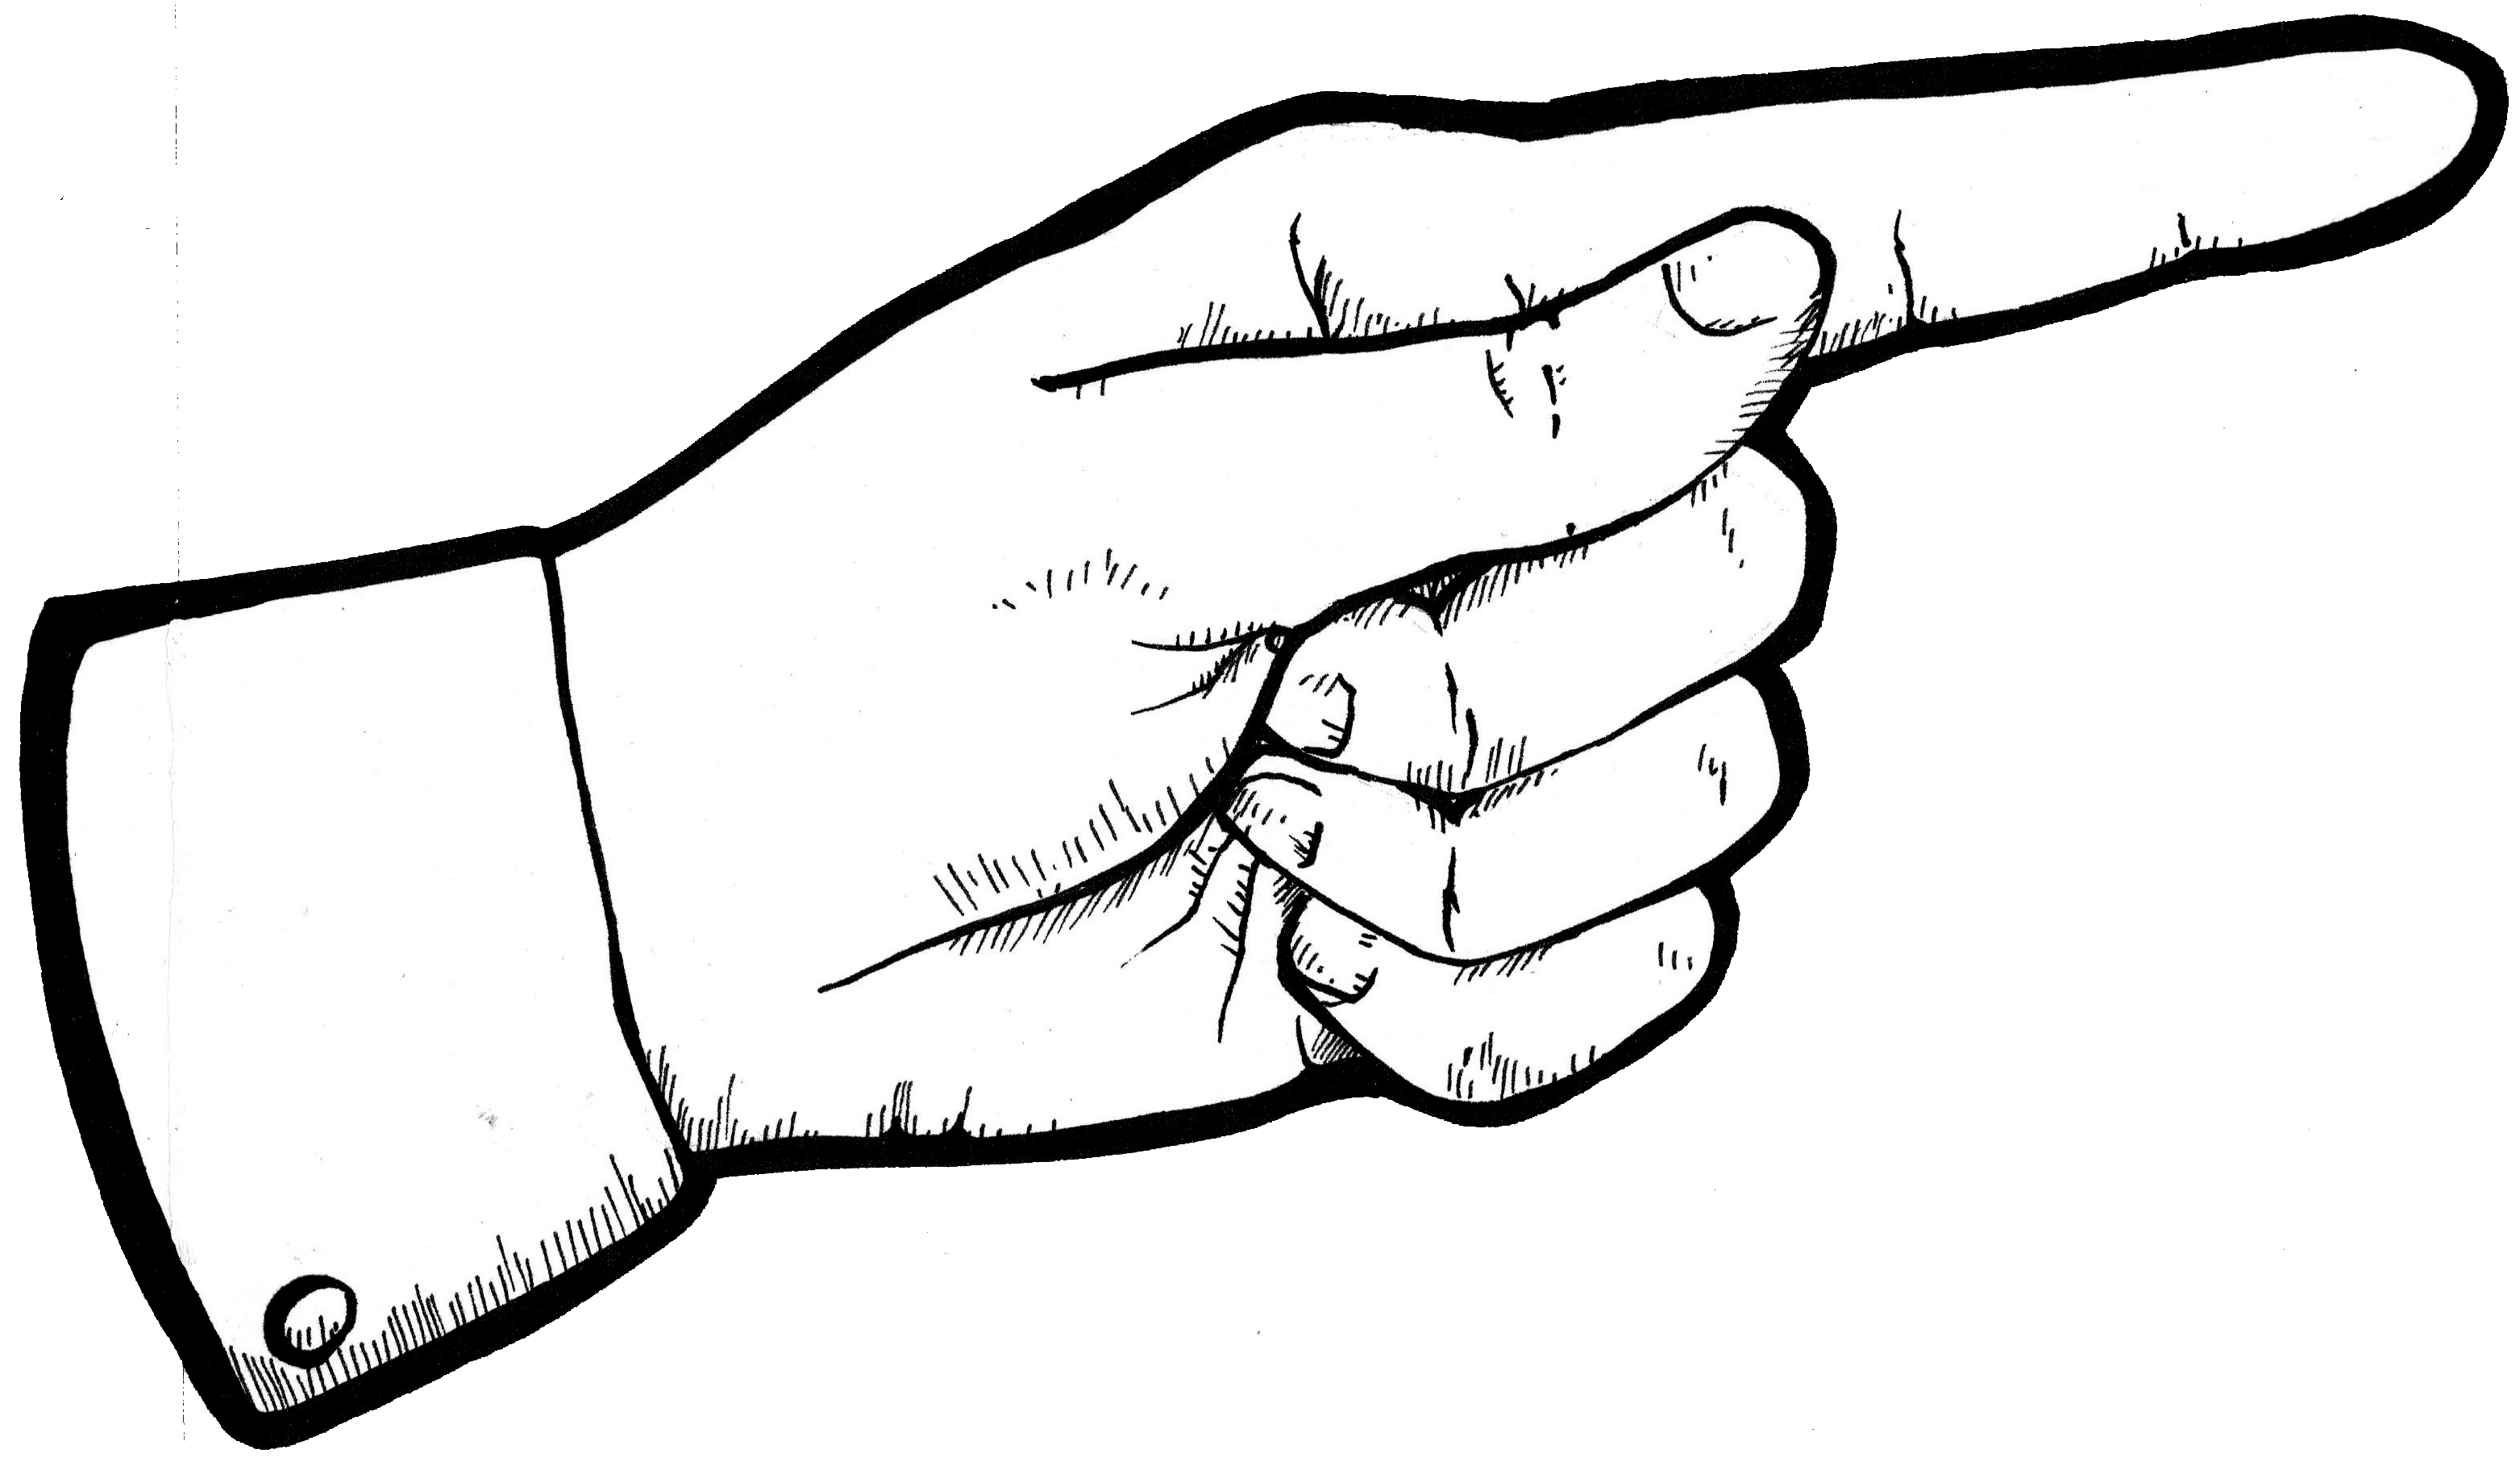 Two Hands Drawing Each Other